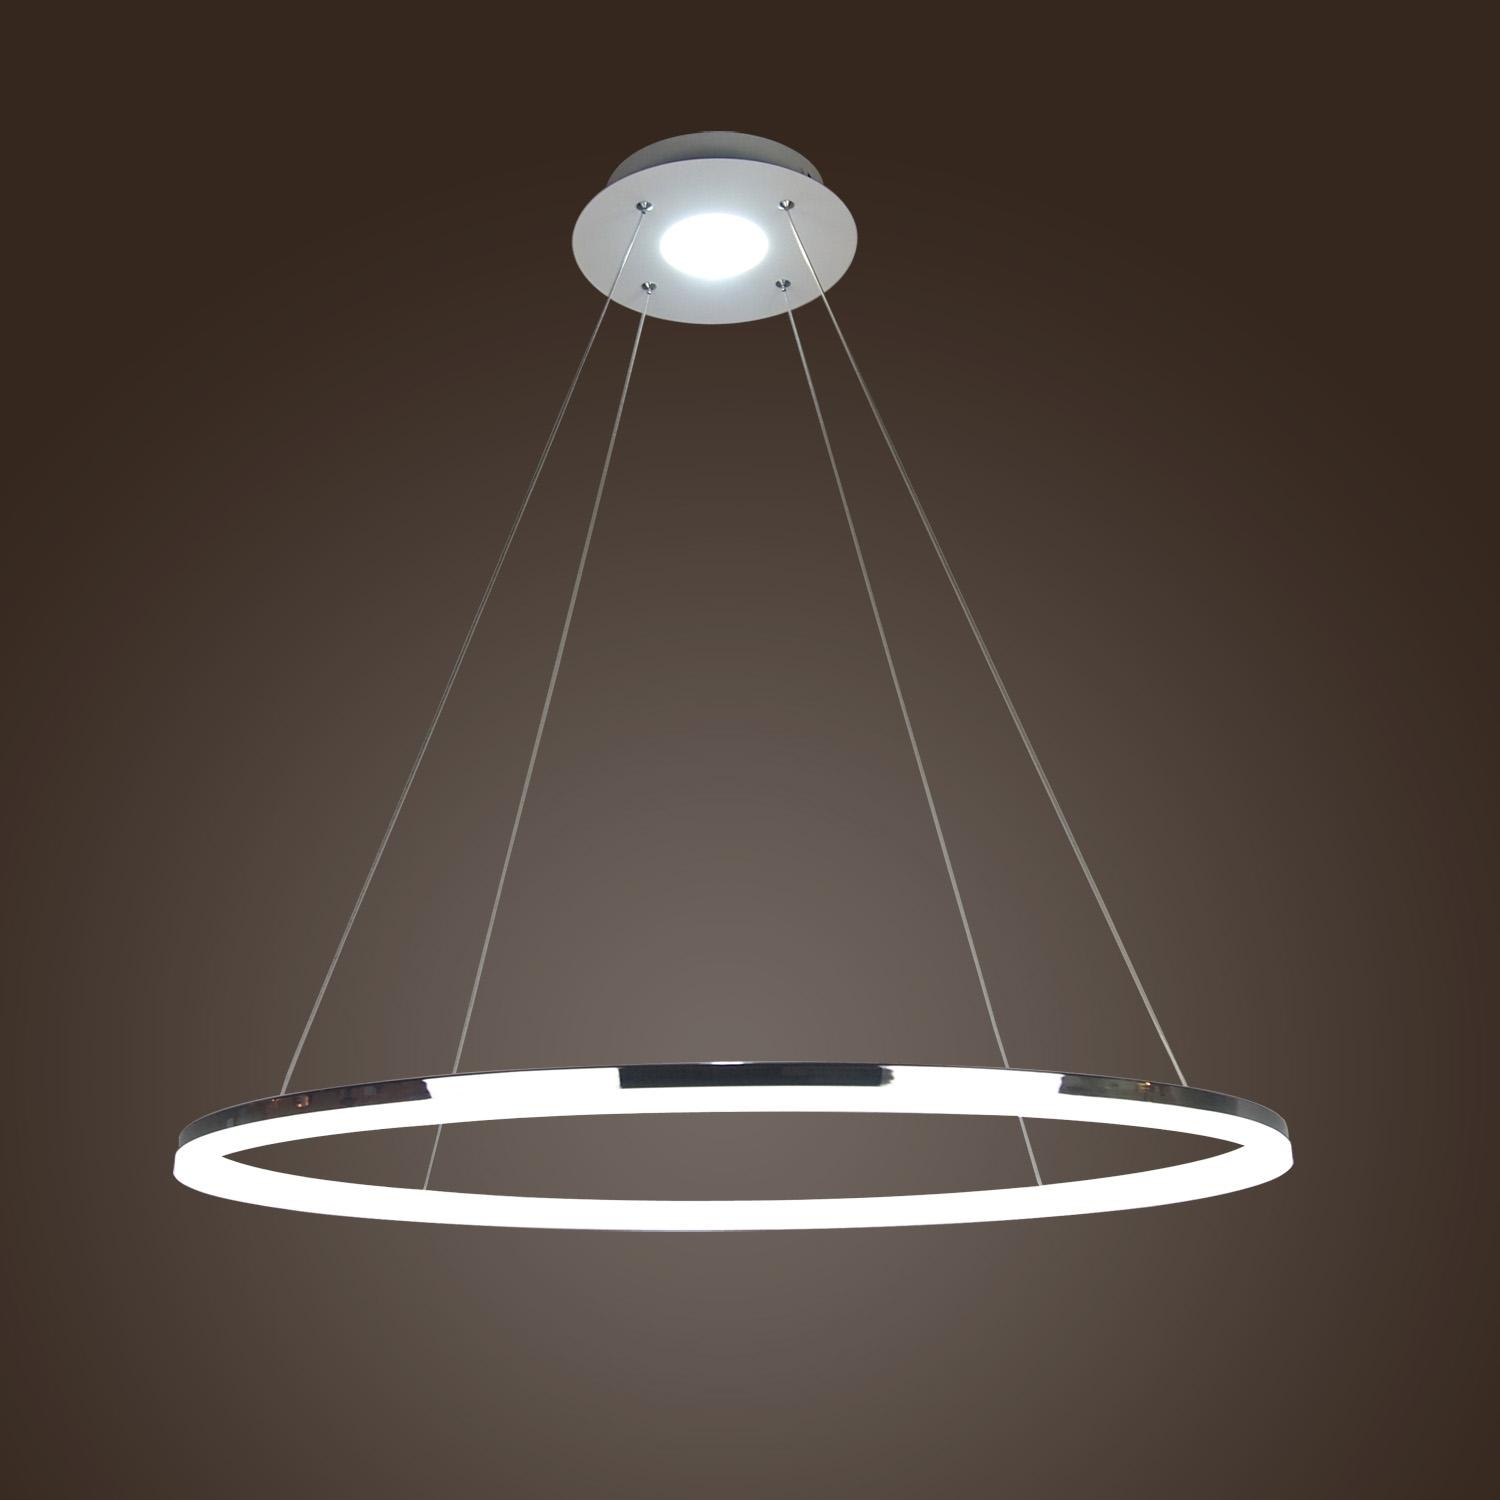 406080cm Modern Led Acrylic Round Pendant Chandelier Ceiling Intended For Modern Led Chandelier (Photo 3 of 15)